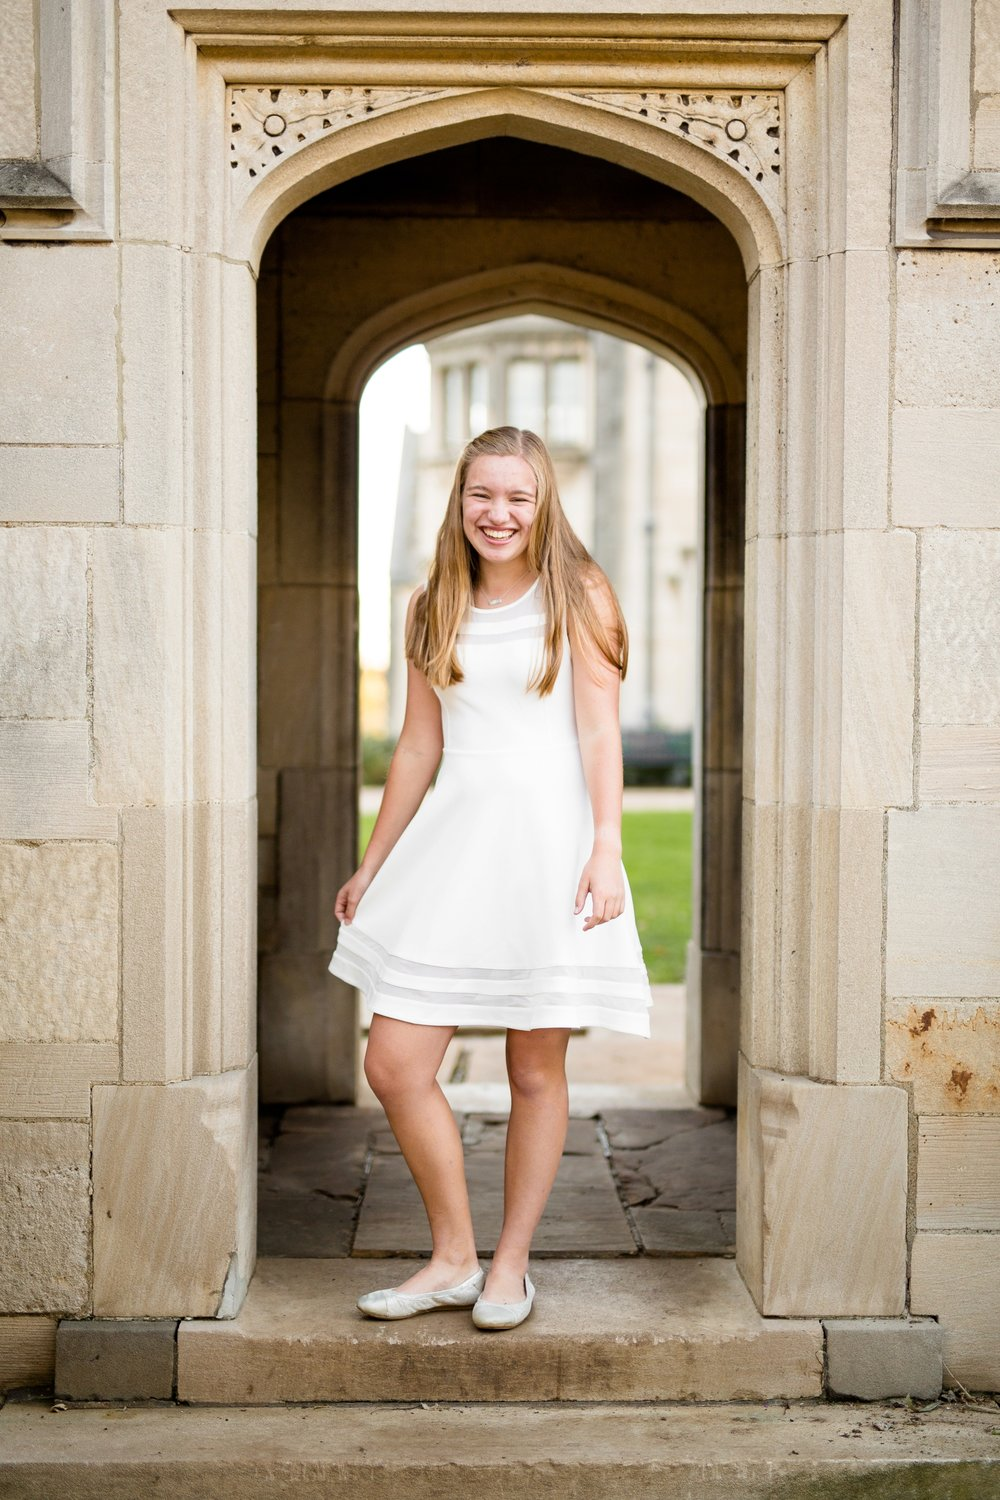 hartwood acres senior photos, hartwood acres senior pictures, hartwood acres senior photographer, north hill senior photographer, pittsburgh senior photographer